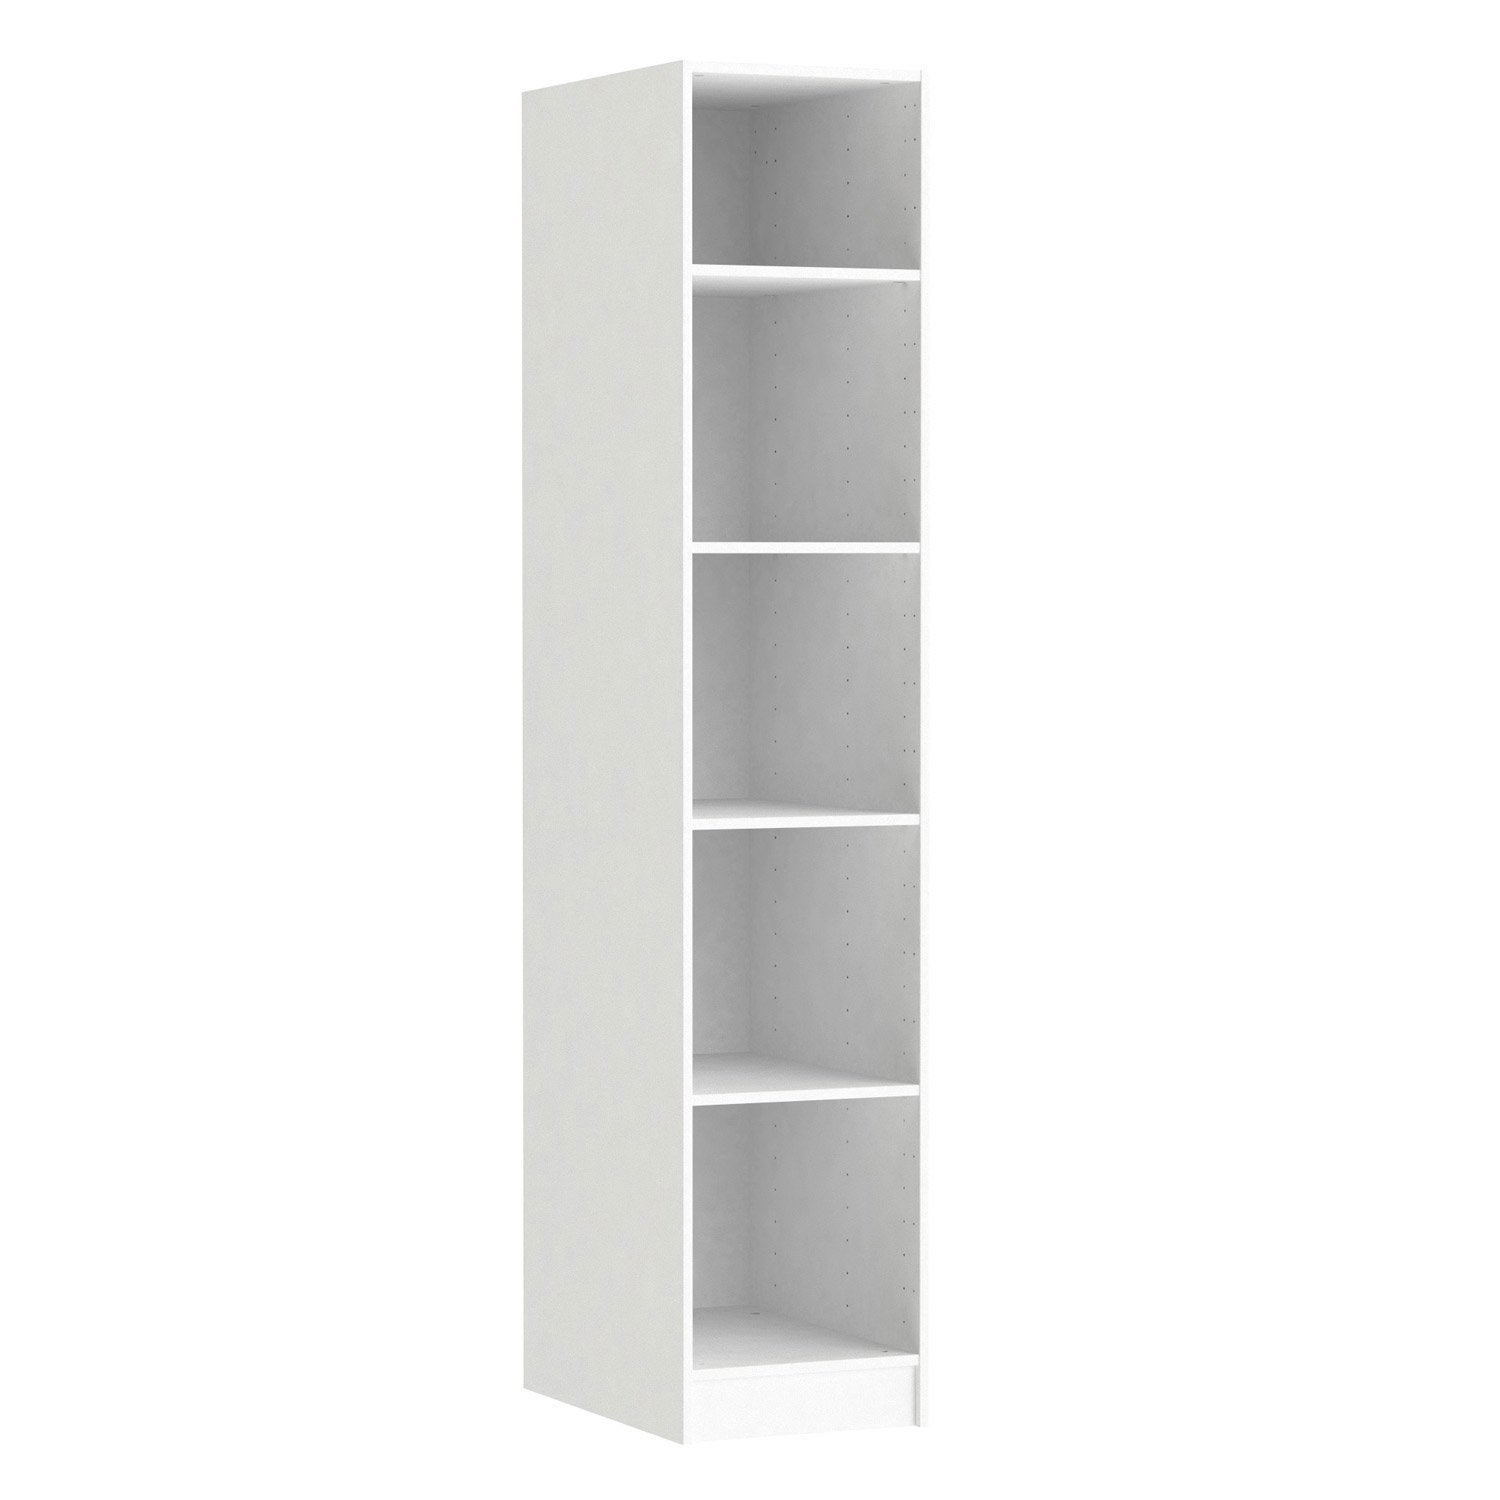 Caisson spaceo home 200 x 40 x 60 cm blanc leroy merlin for Porte 60 cm de large